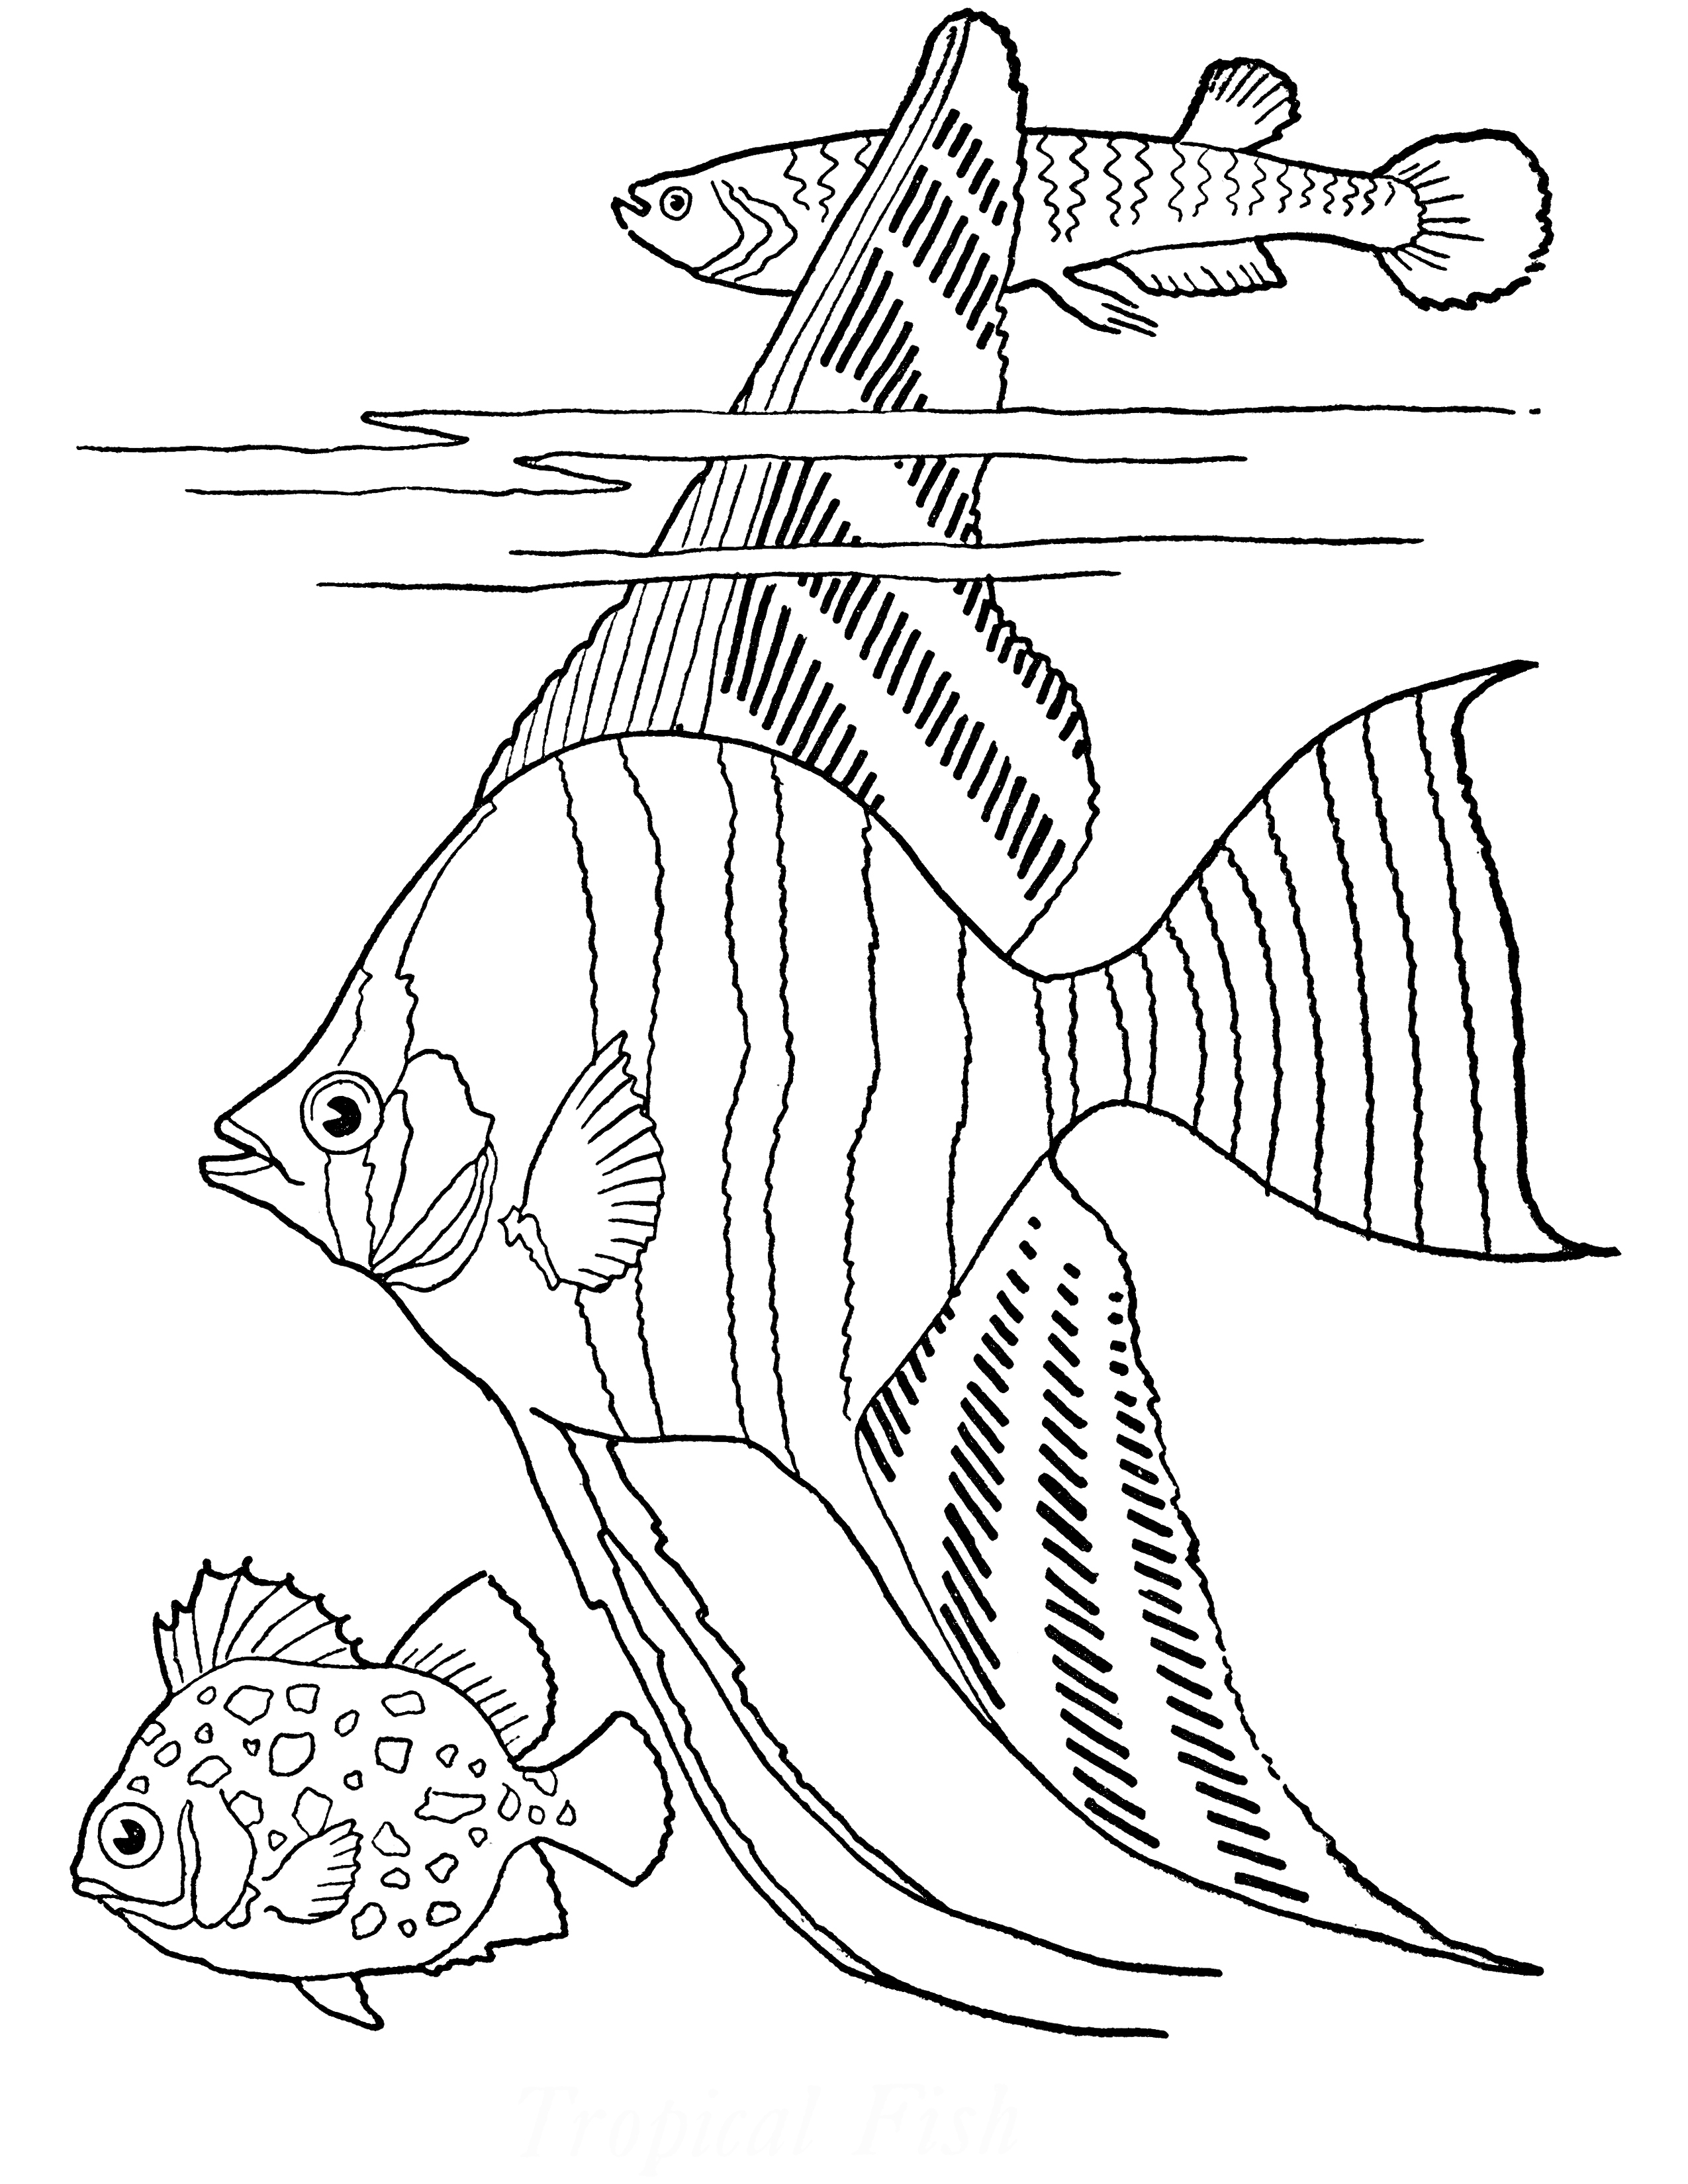 large fish coloring page angelfish coloring fish drawings fish coloring page fish coloring large page